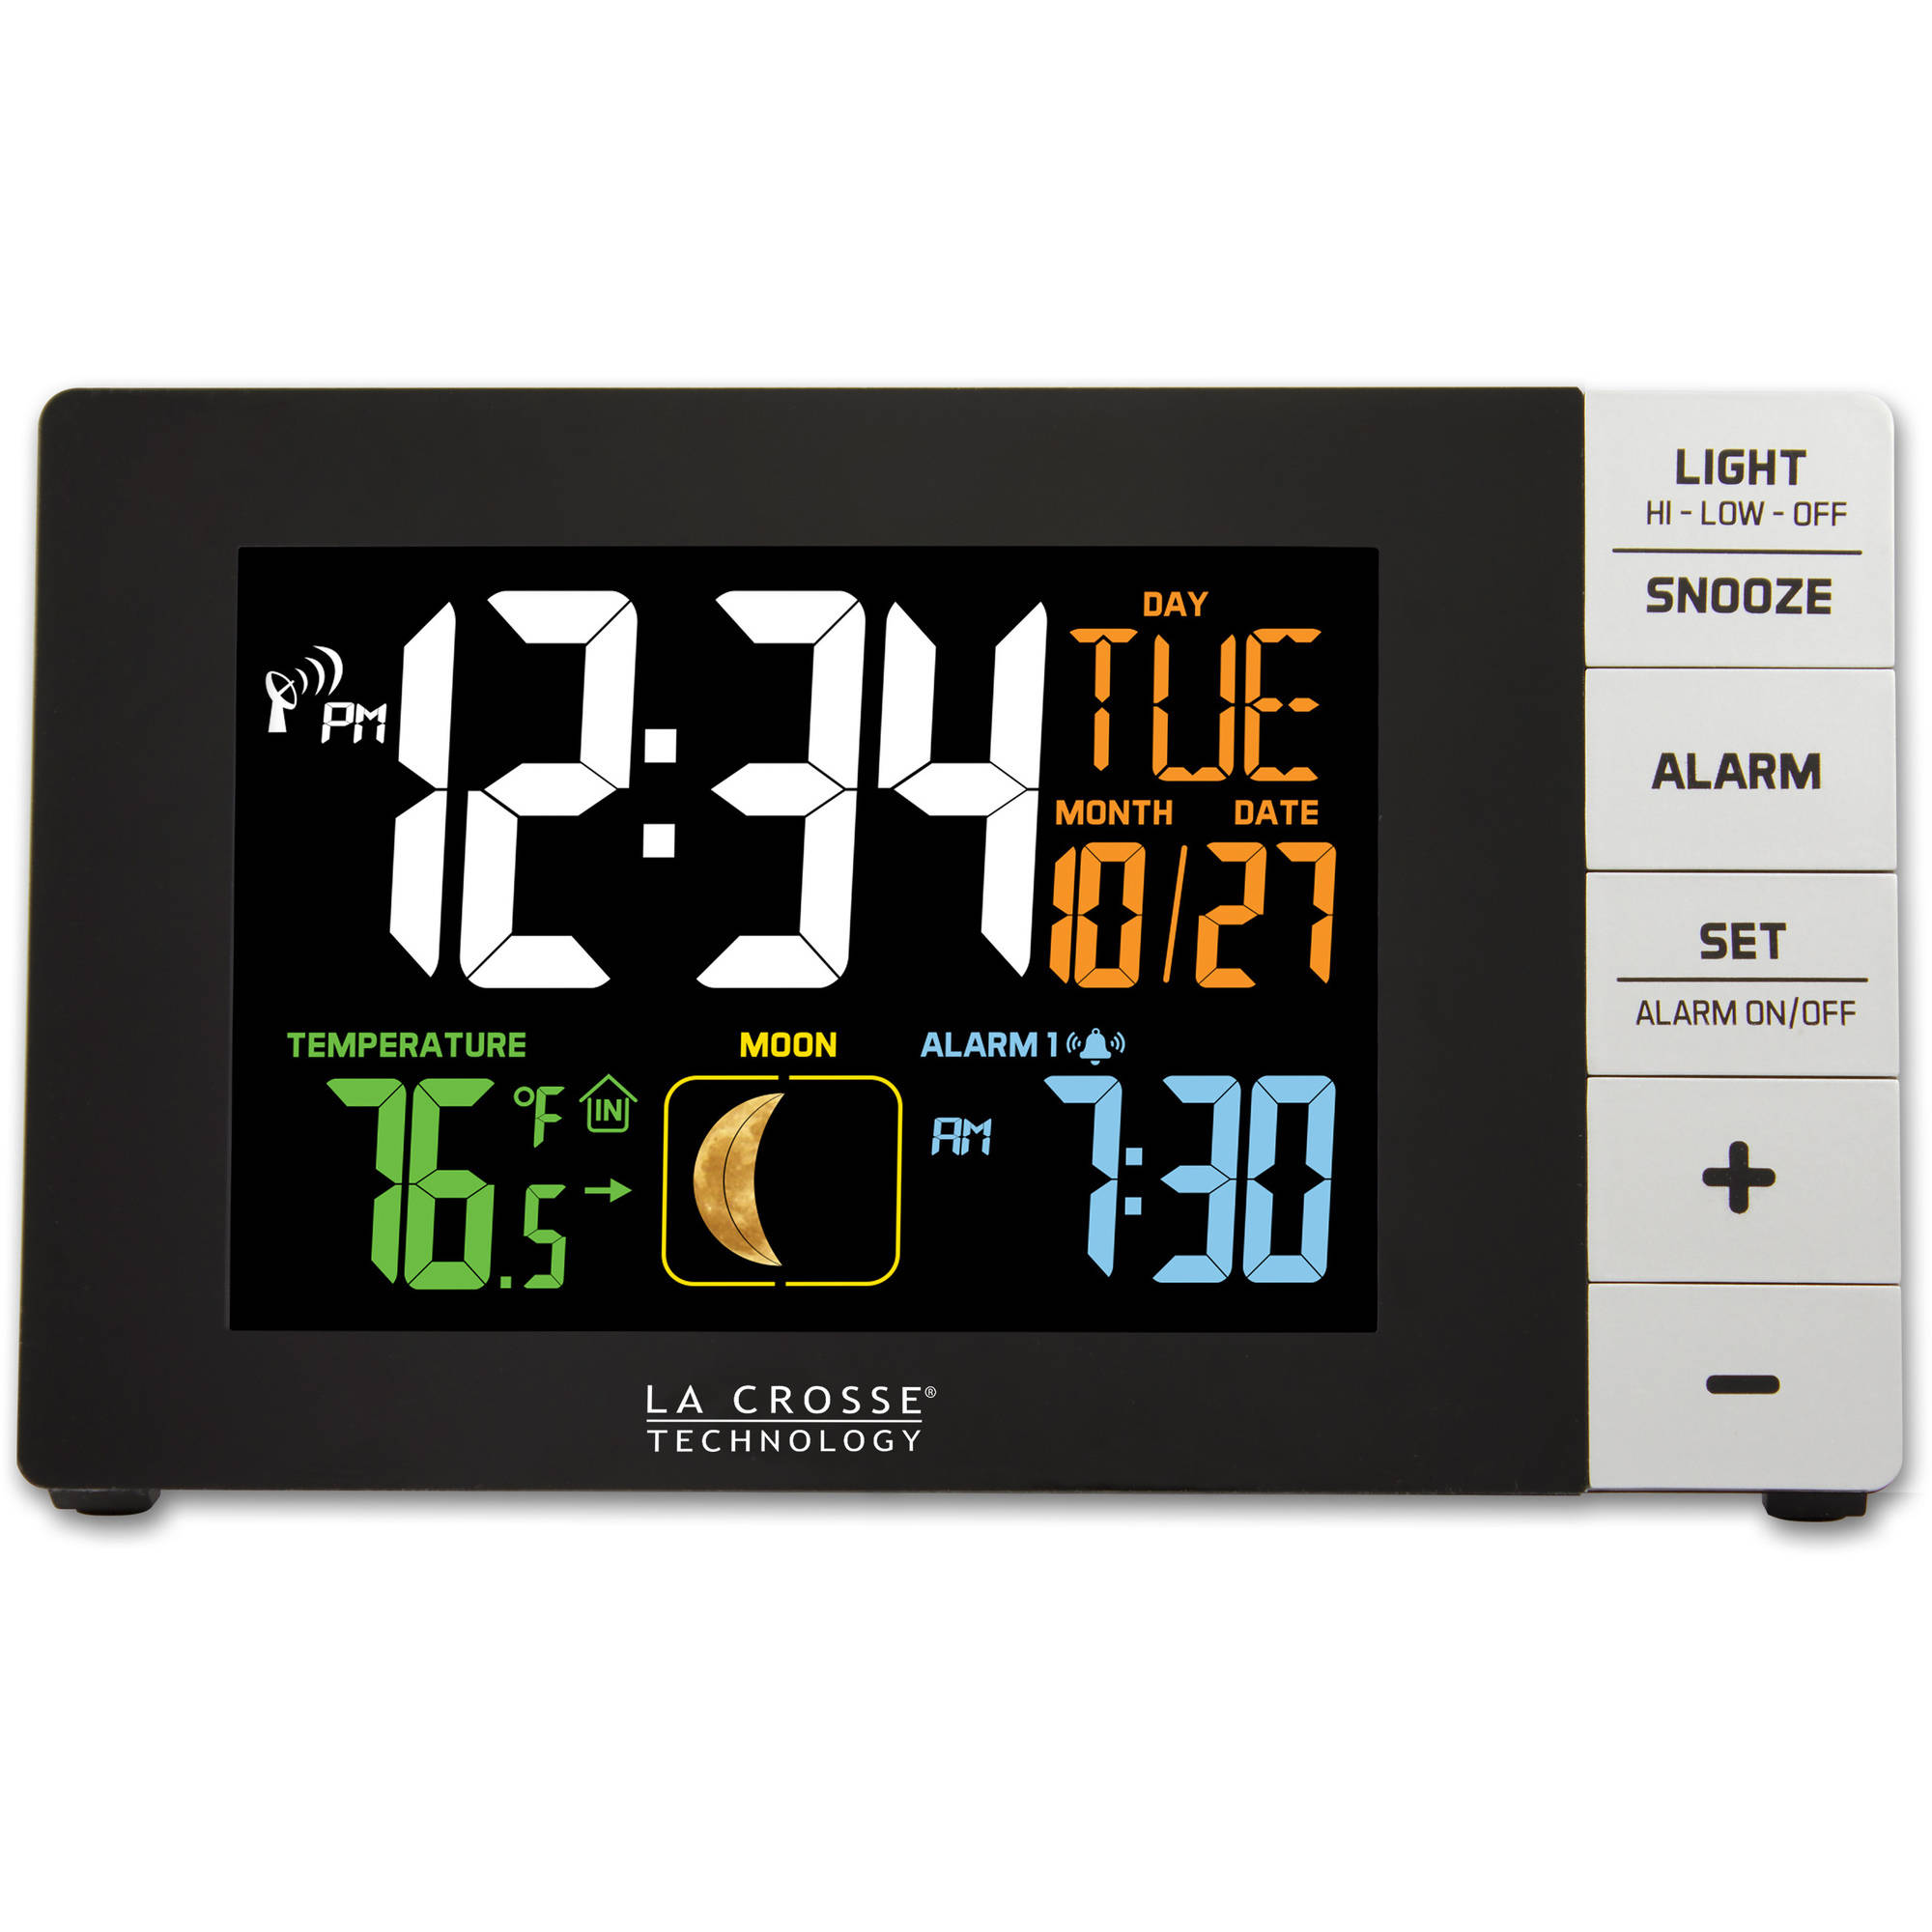 La Crosse Technology Color Alarm Clock with Indoor Temperature and USB Port